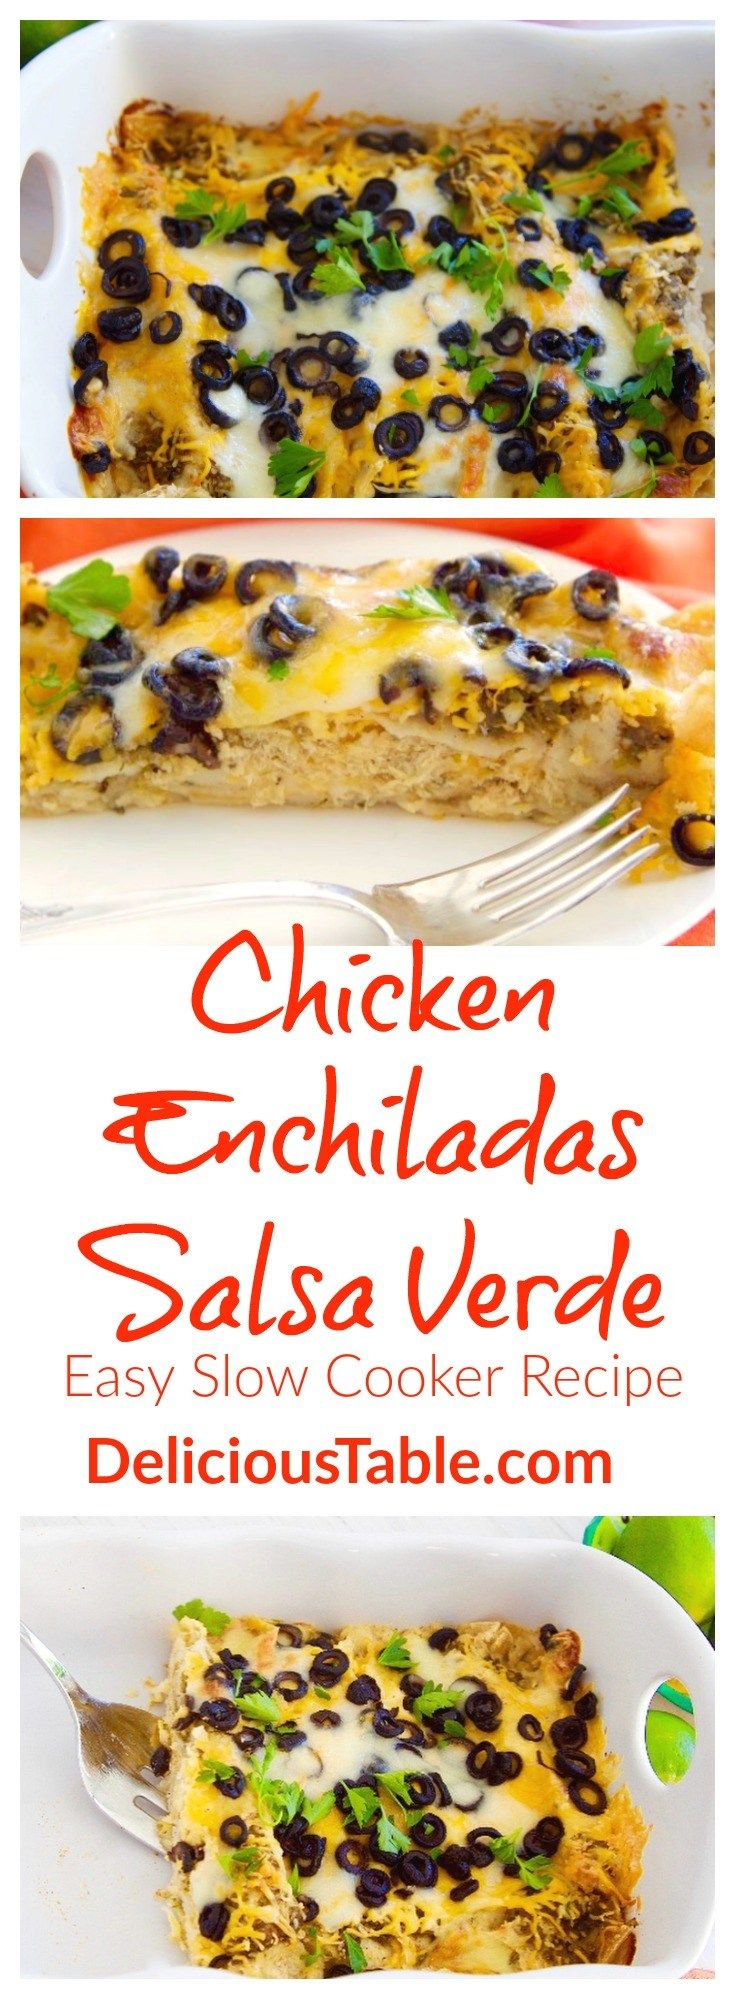 Easy Chicken Enchiladas Salsa Verde quickly assemble after the chicken filling is made in the slow cooker. Fire roasted salsa verde flavor in every bite!